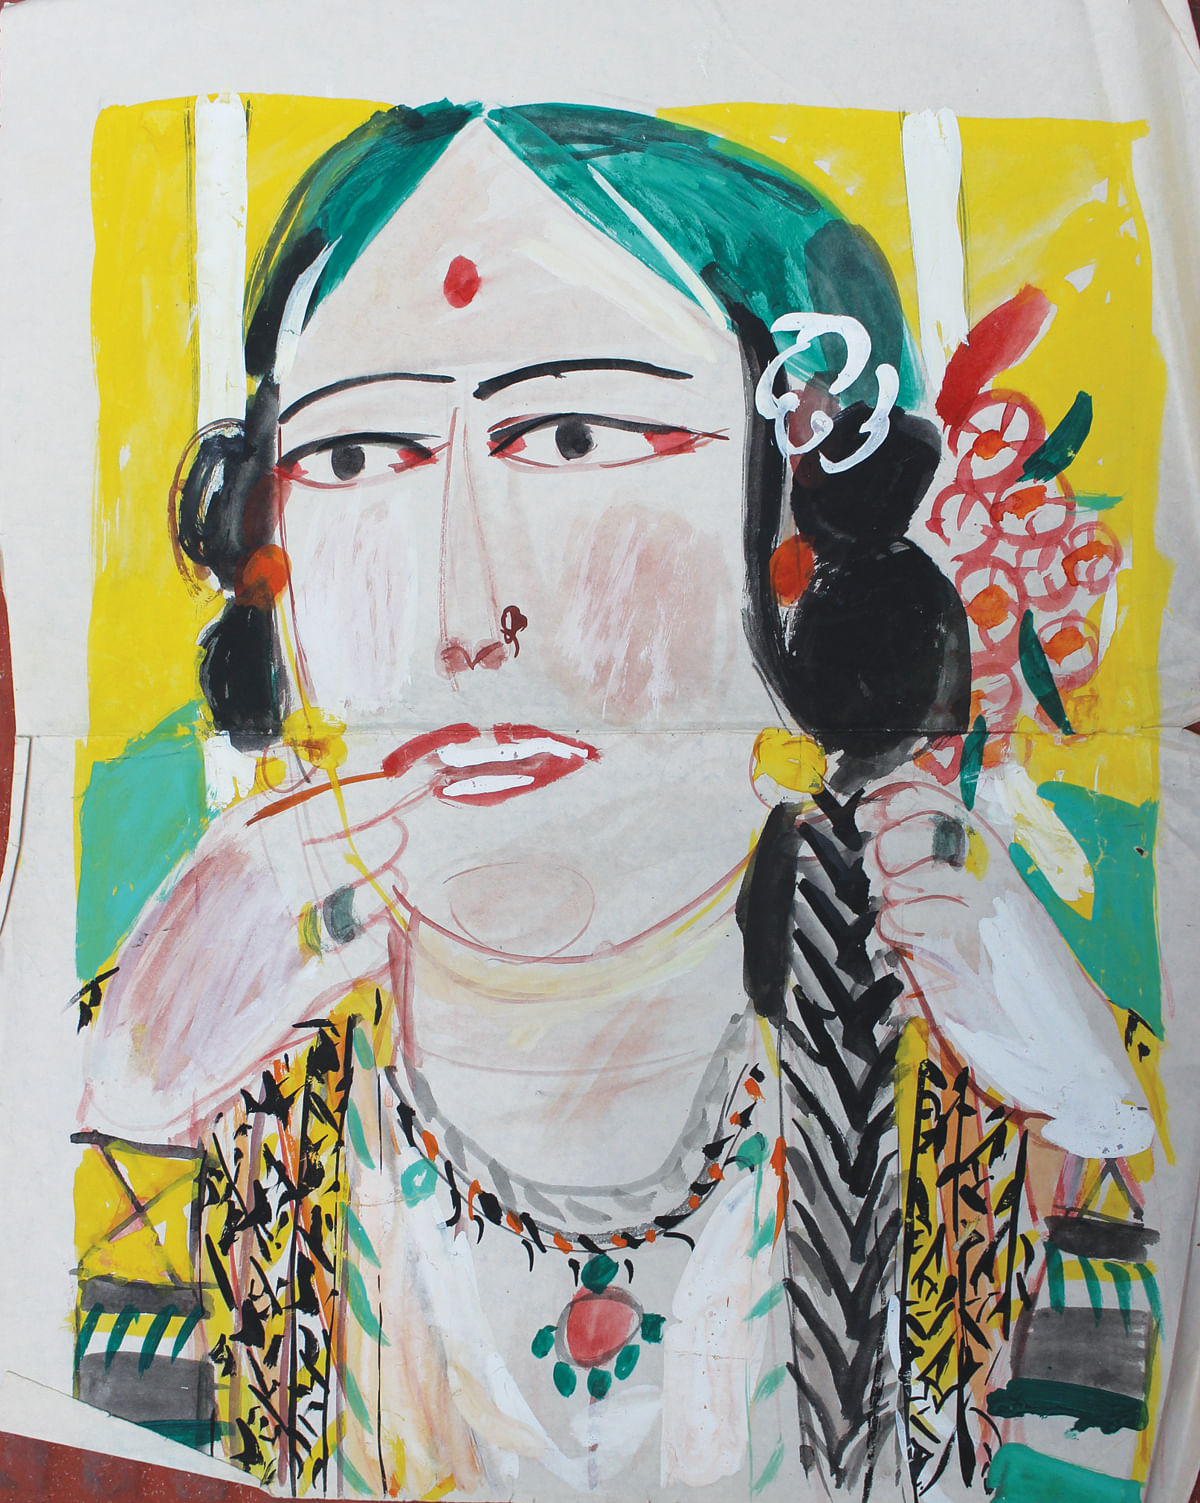 'Women seen and remembered': KG Subramanyan's  euphoric splash of colours